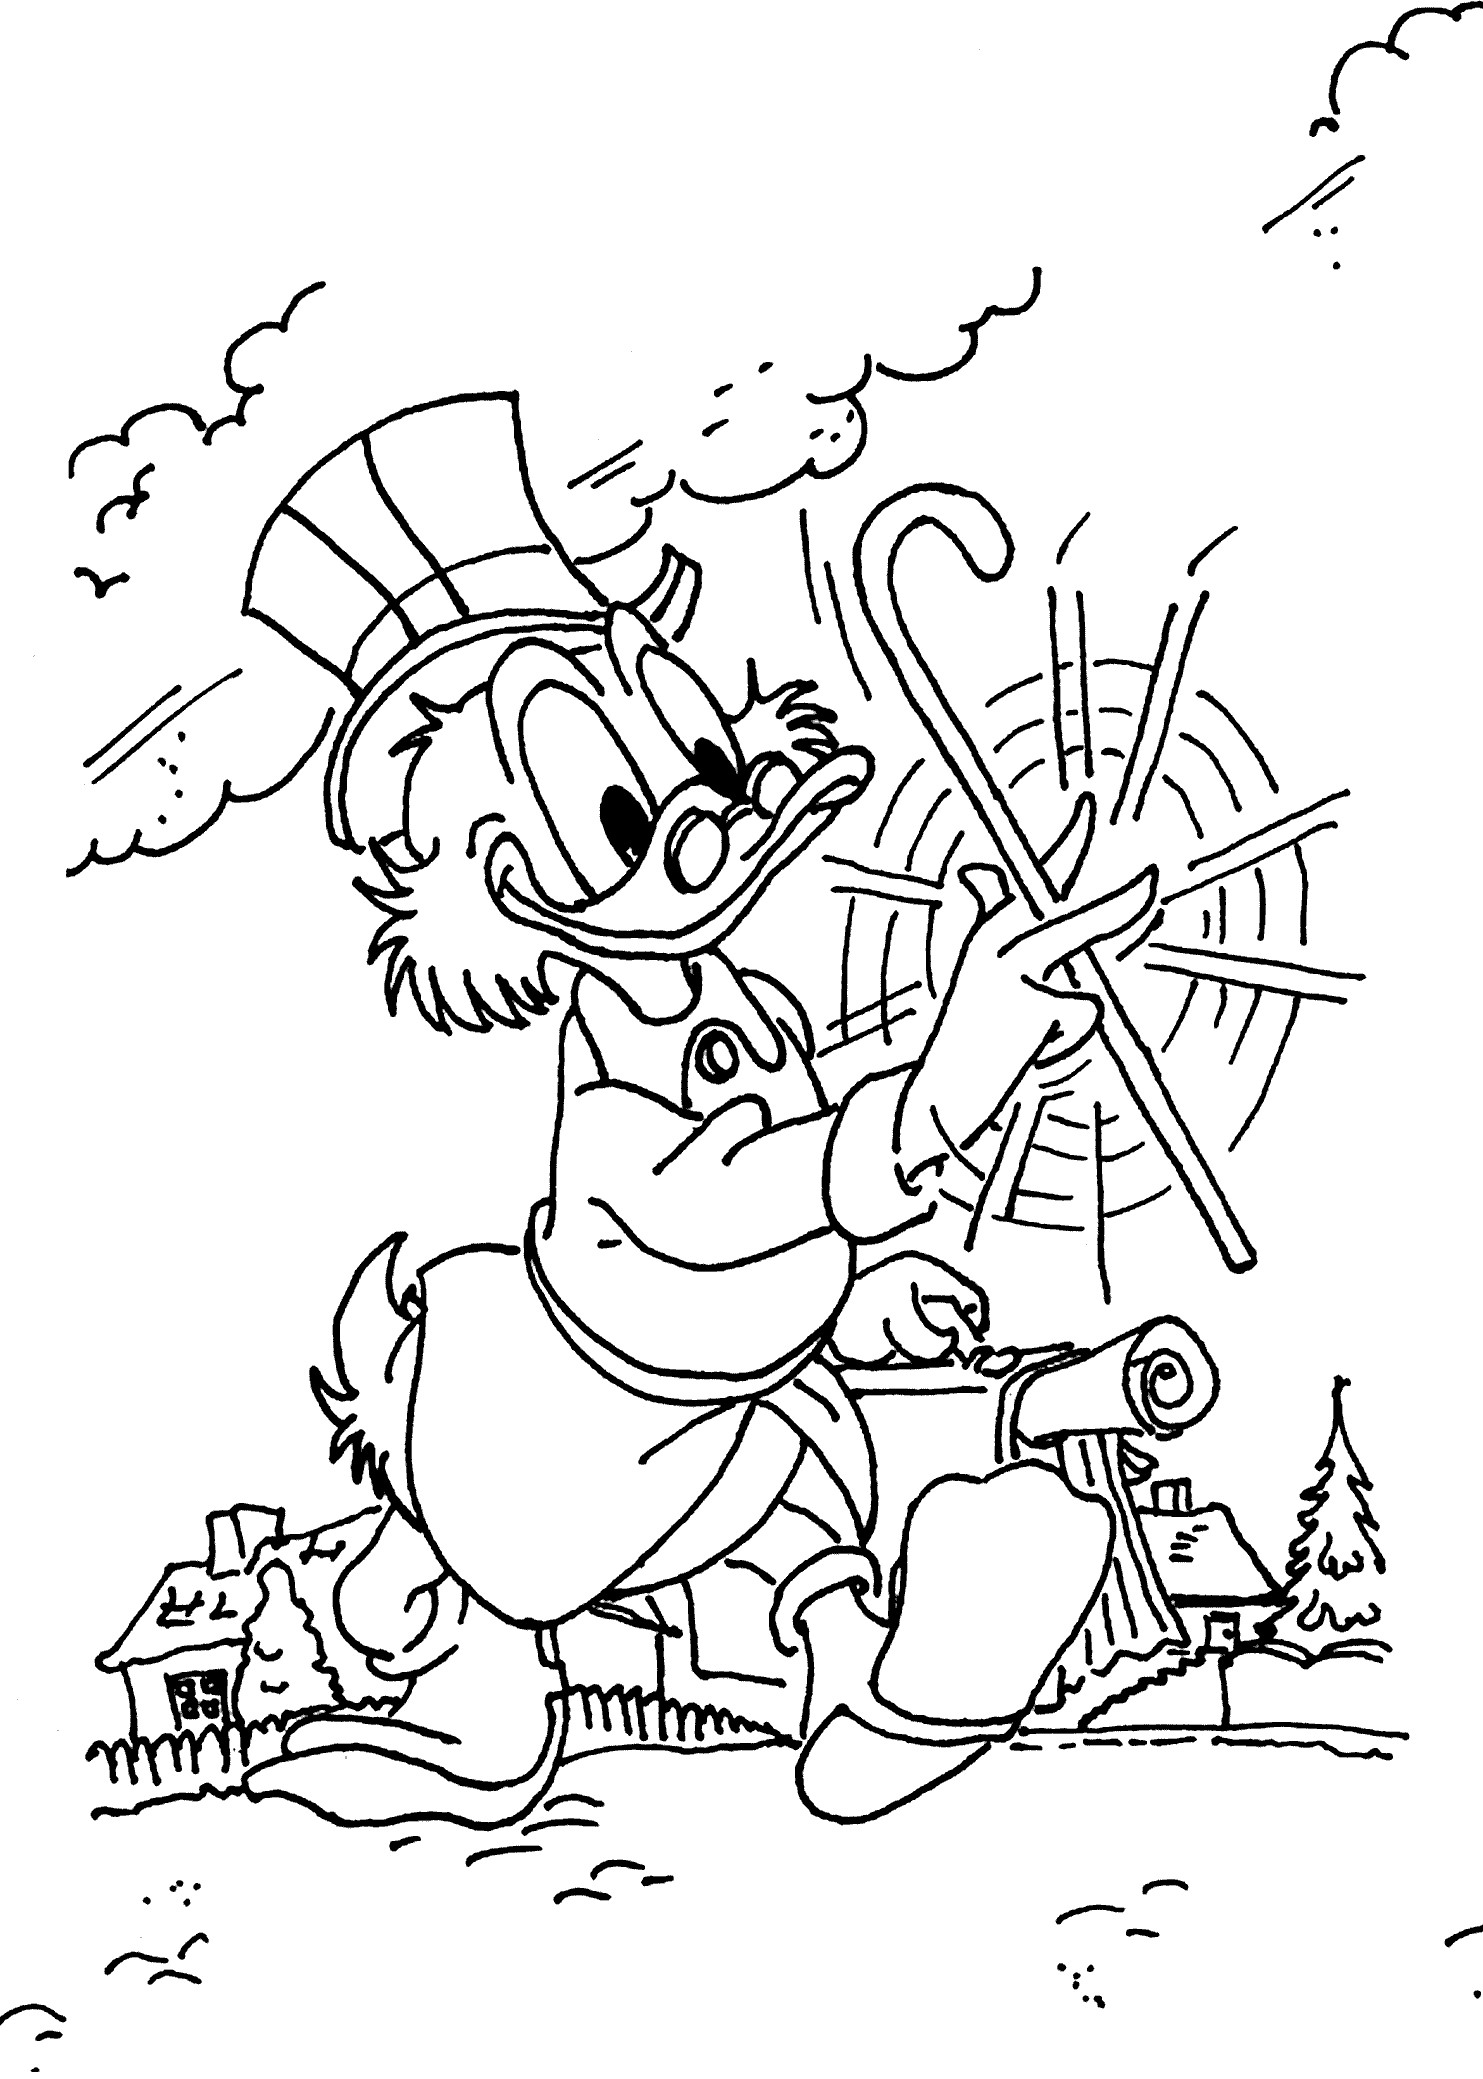 Meeting Coloring Pages At Getcolorings